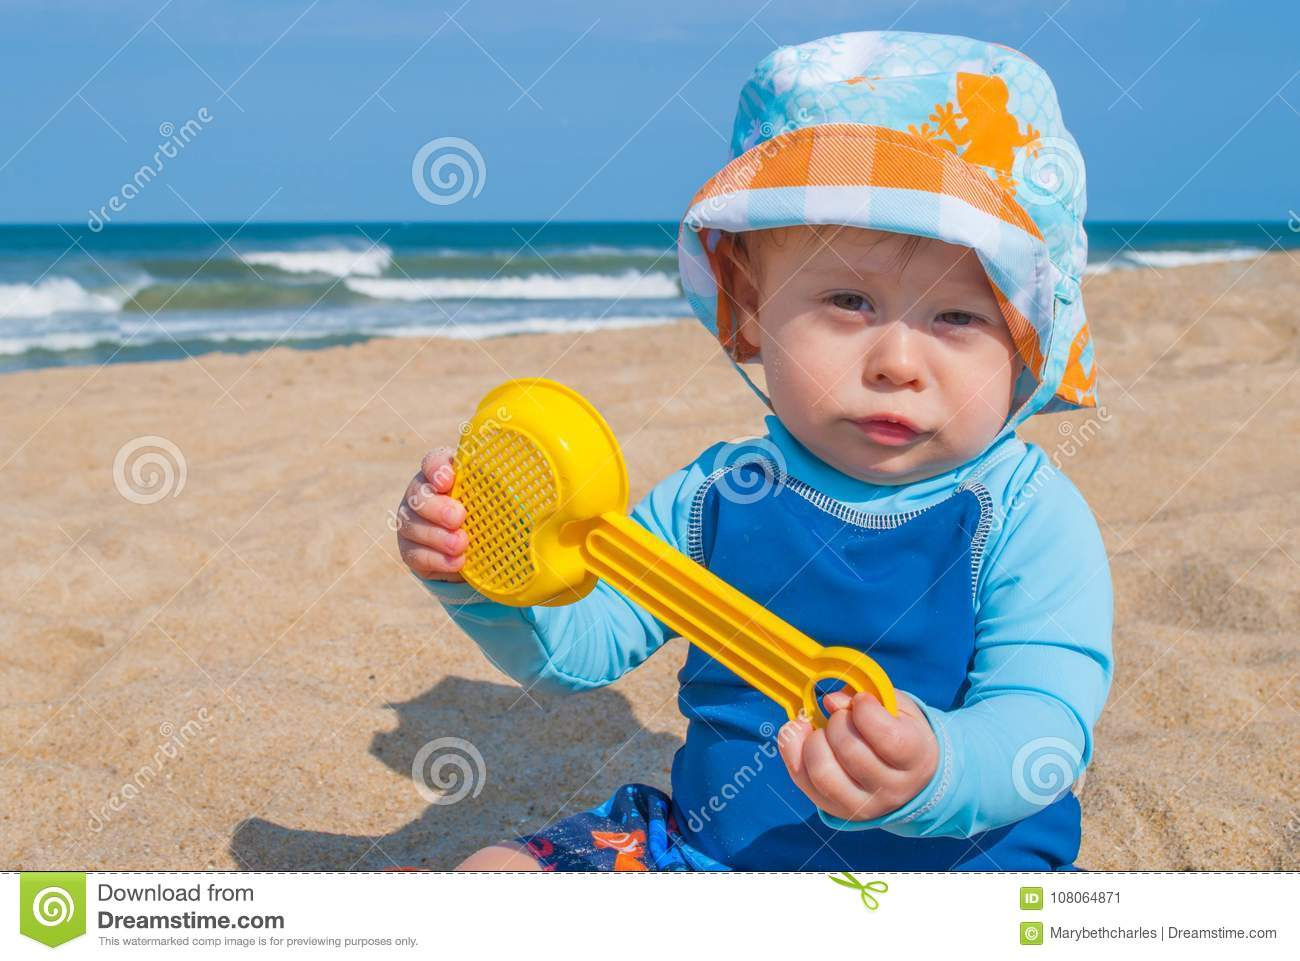 aa80480f7 Baby Boy Wearing Blue Shirt Playing with Toys in the Sand at the Beach